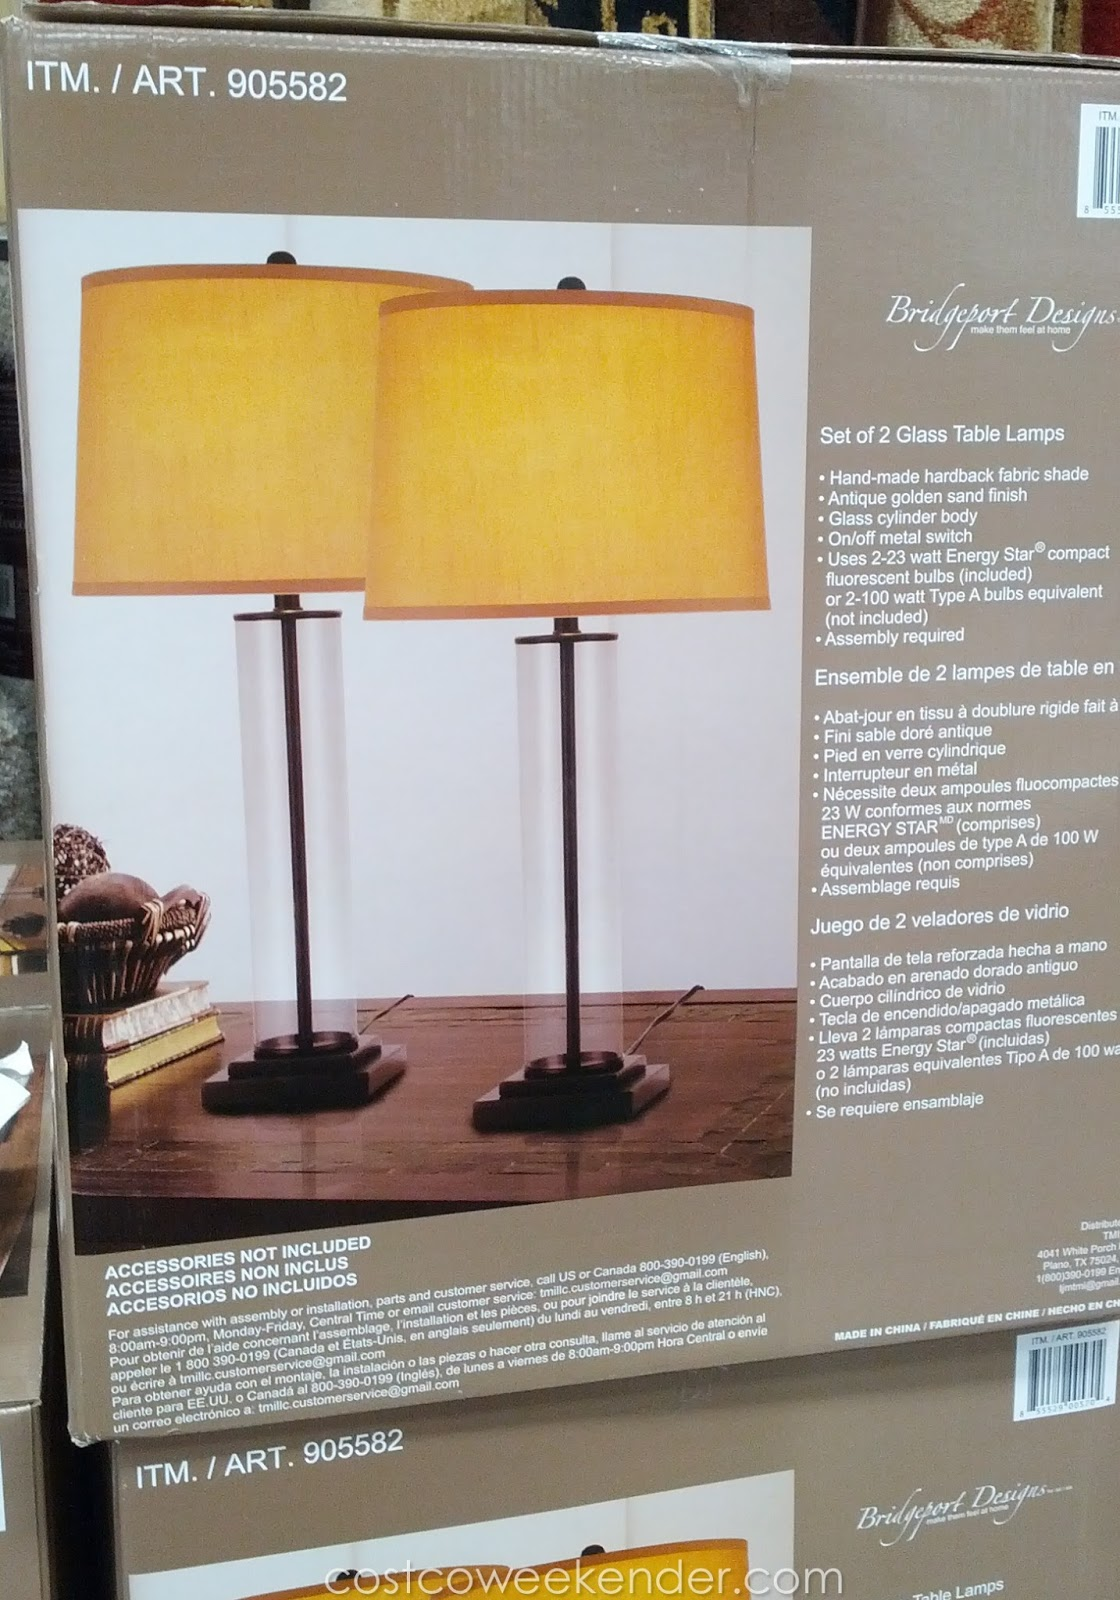 Name:  bridgeport-designs-glass-cylinder-table-lamps-set-of-2-costco.jpg